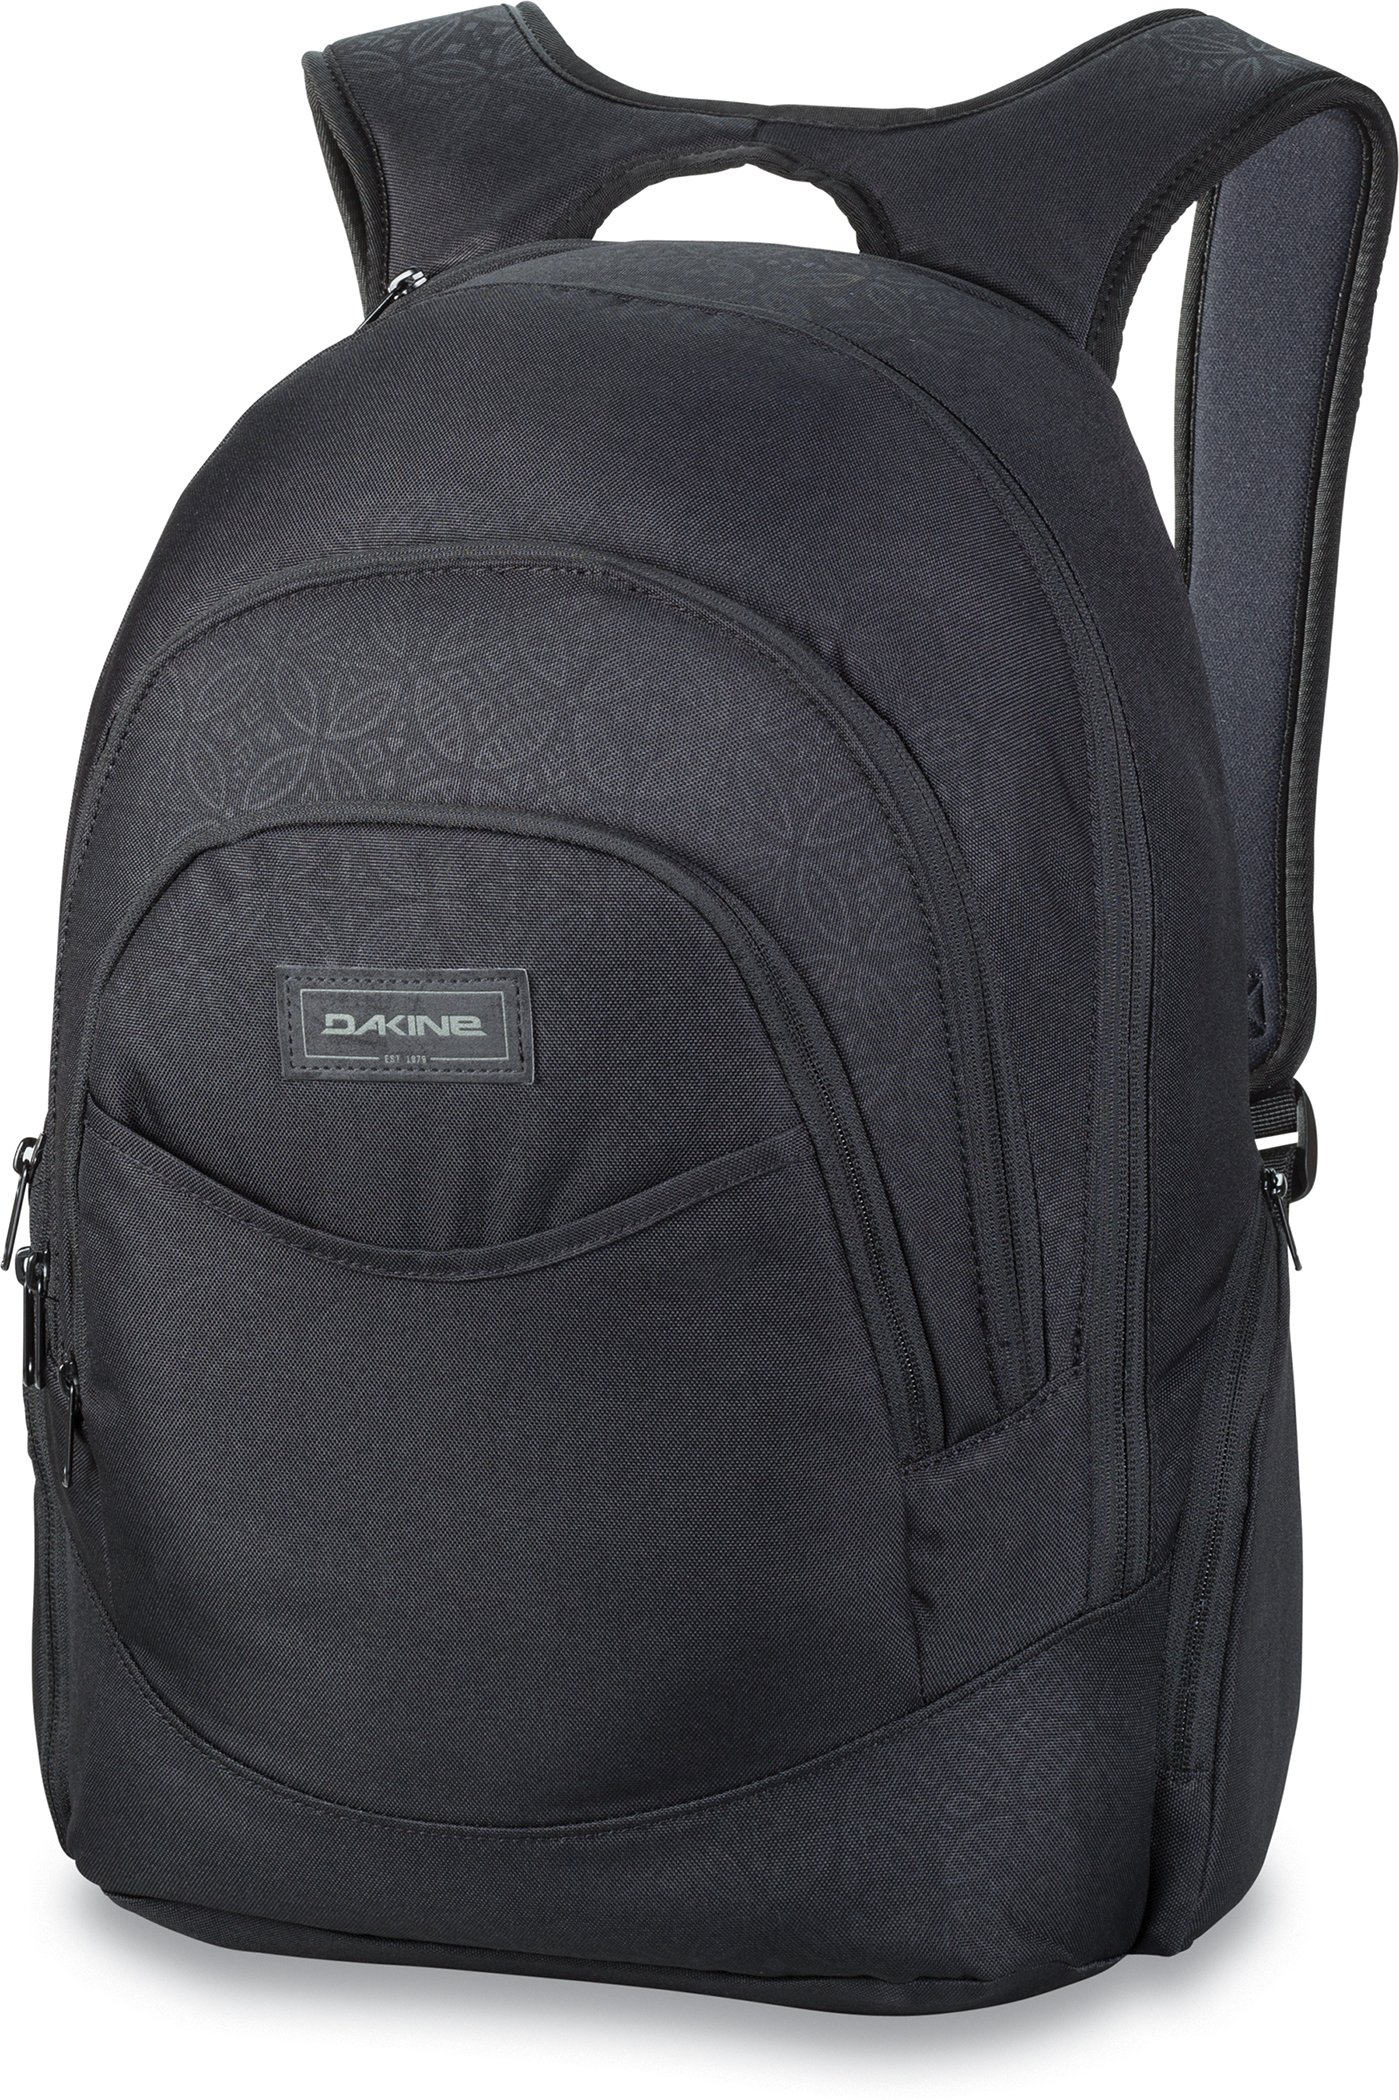 Dakine – Prom 25L Woman's Backpack – Padded Laptop Storage – Insulated Cooler Pocket – Durable Construction – 18'' x 12'' x 9''